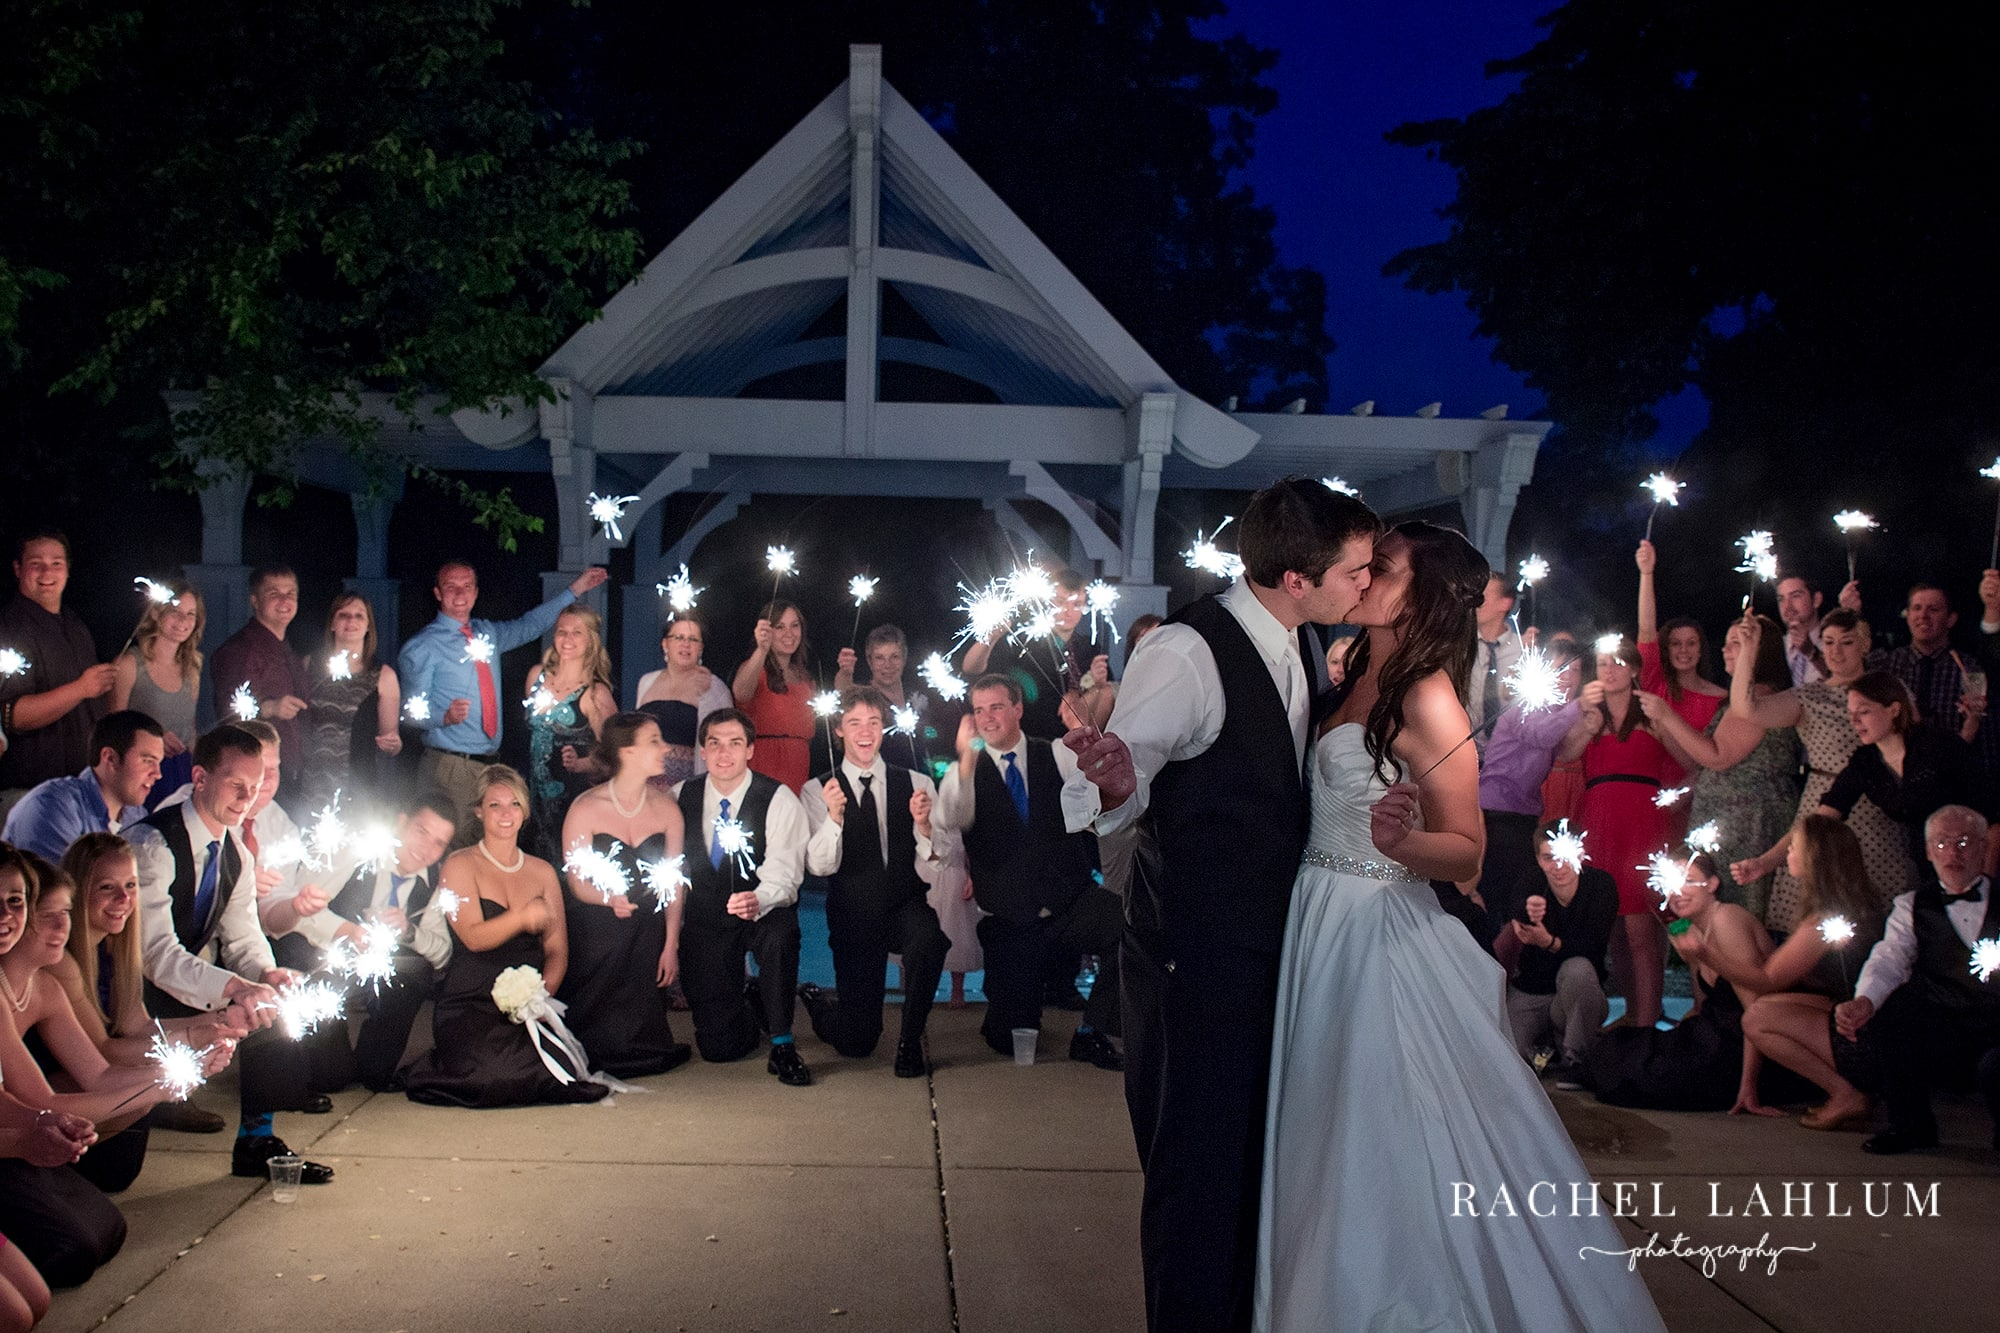 Bride and groom kiss in front of wedding party holing sparklers.